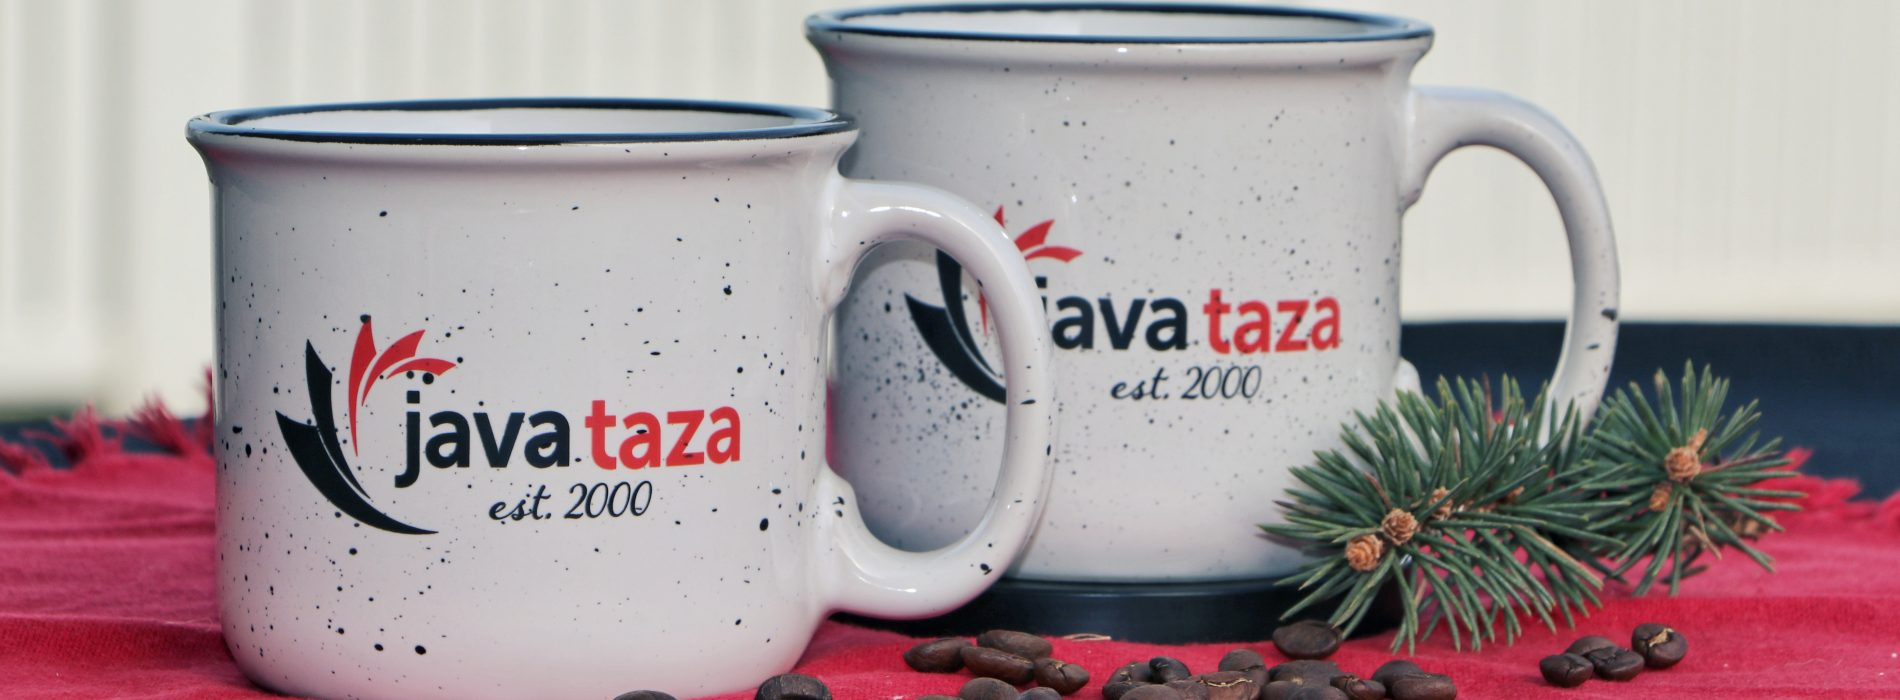 fresh javataza coffee for sale with javataza coffee mugs